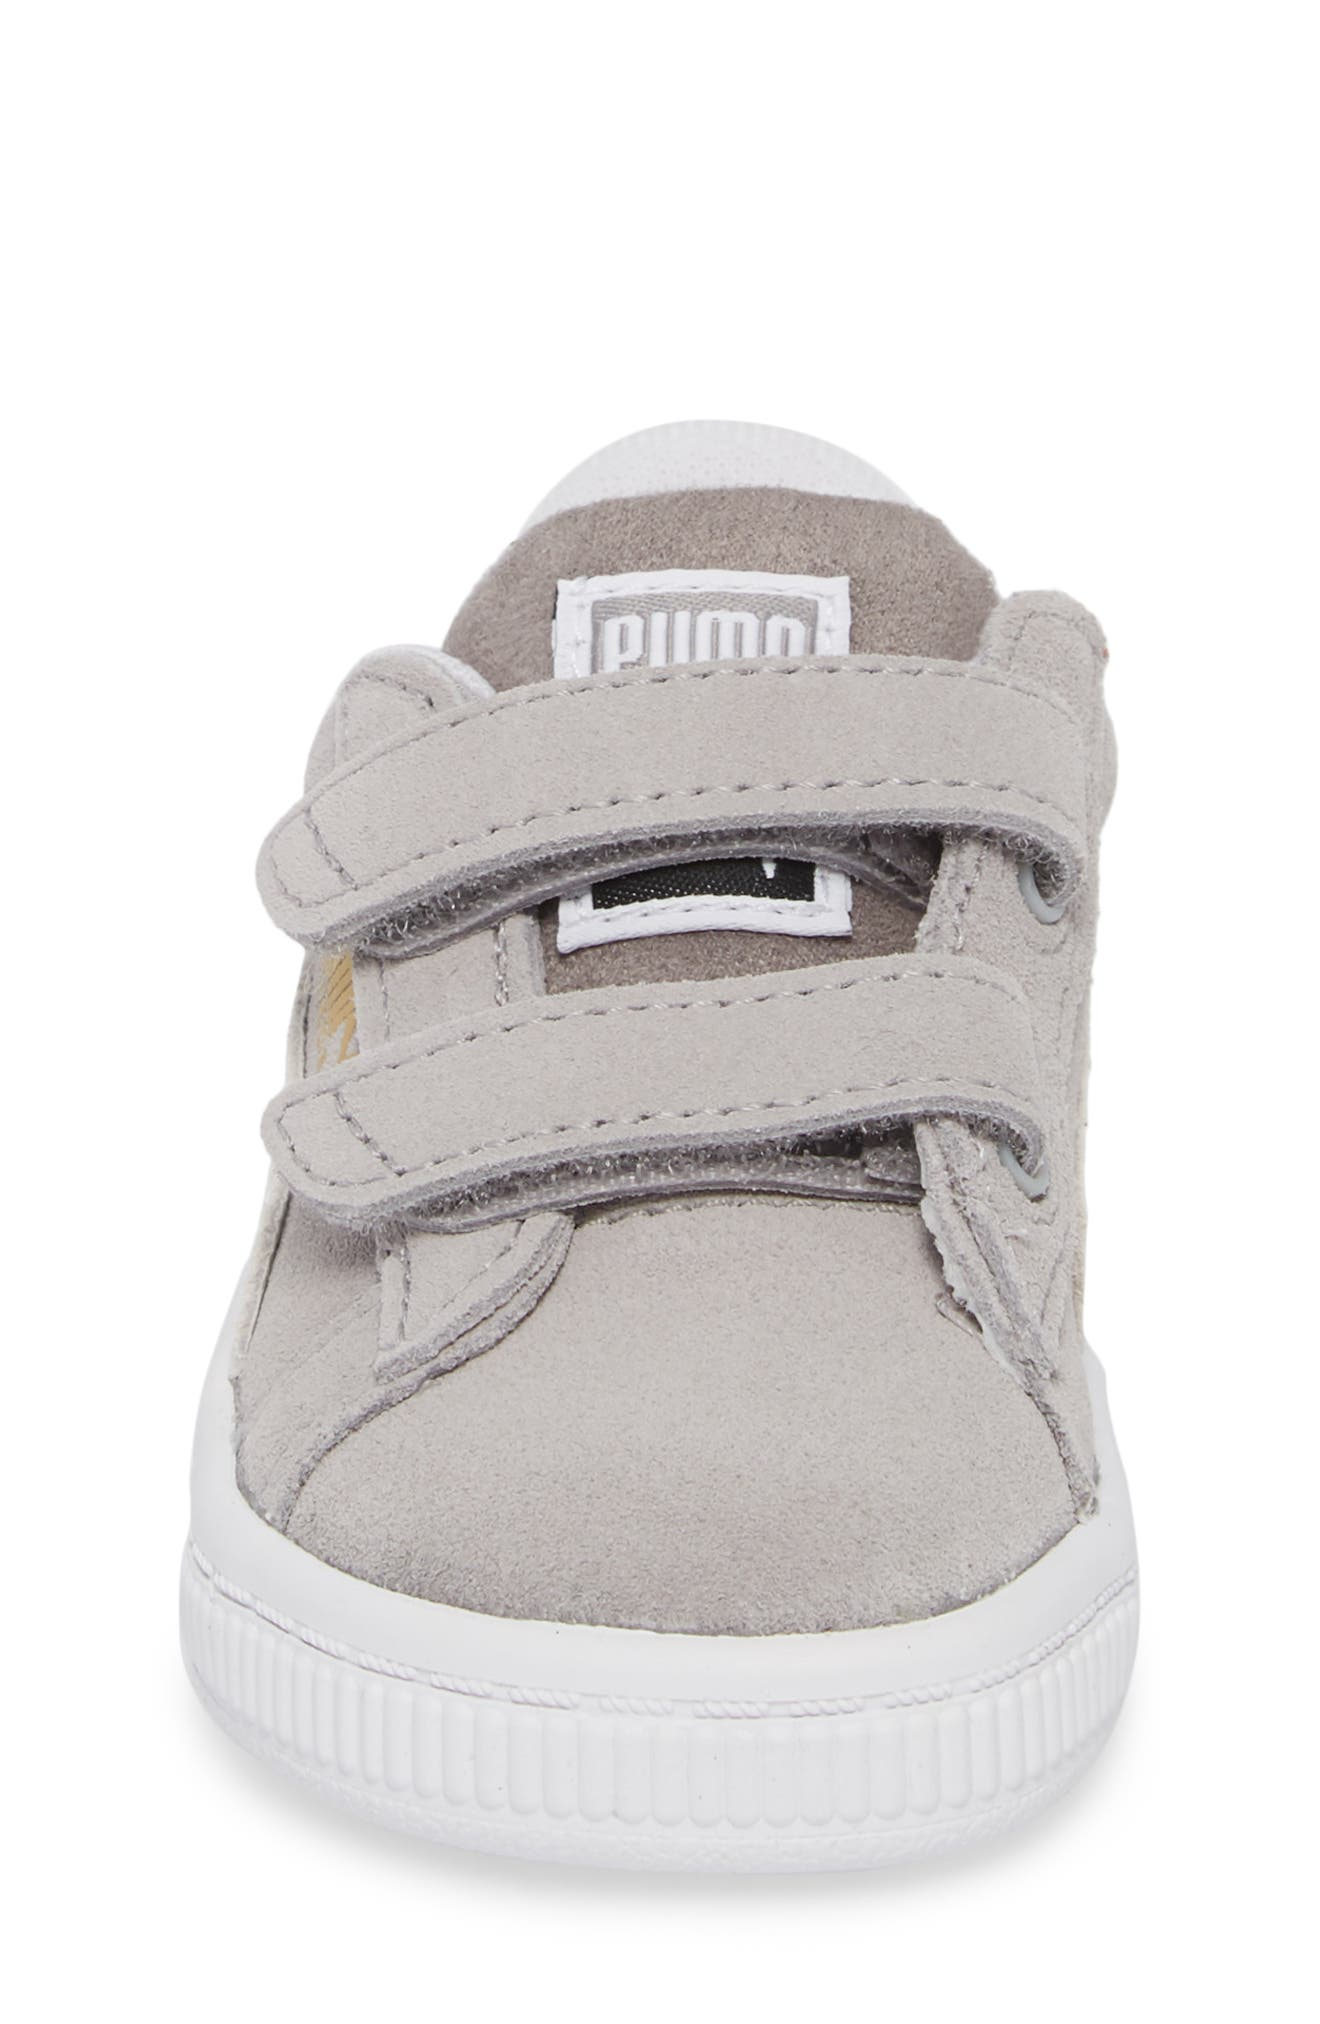 Suede Classic Sneaker,                             Alternate thumbnail 4, color,                             Ash/ Puma White